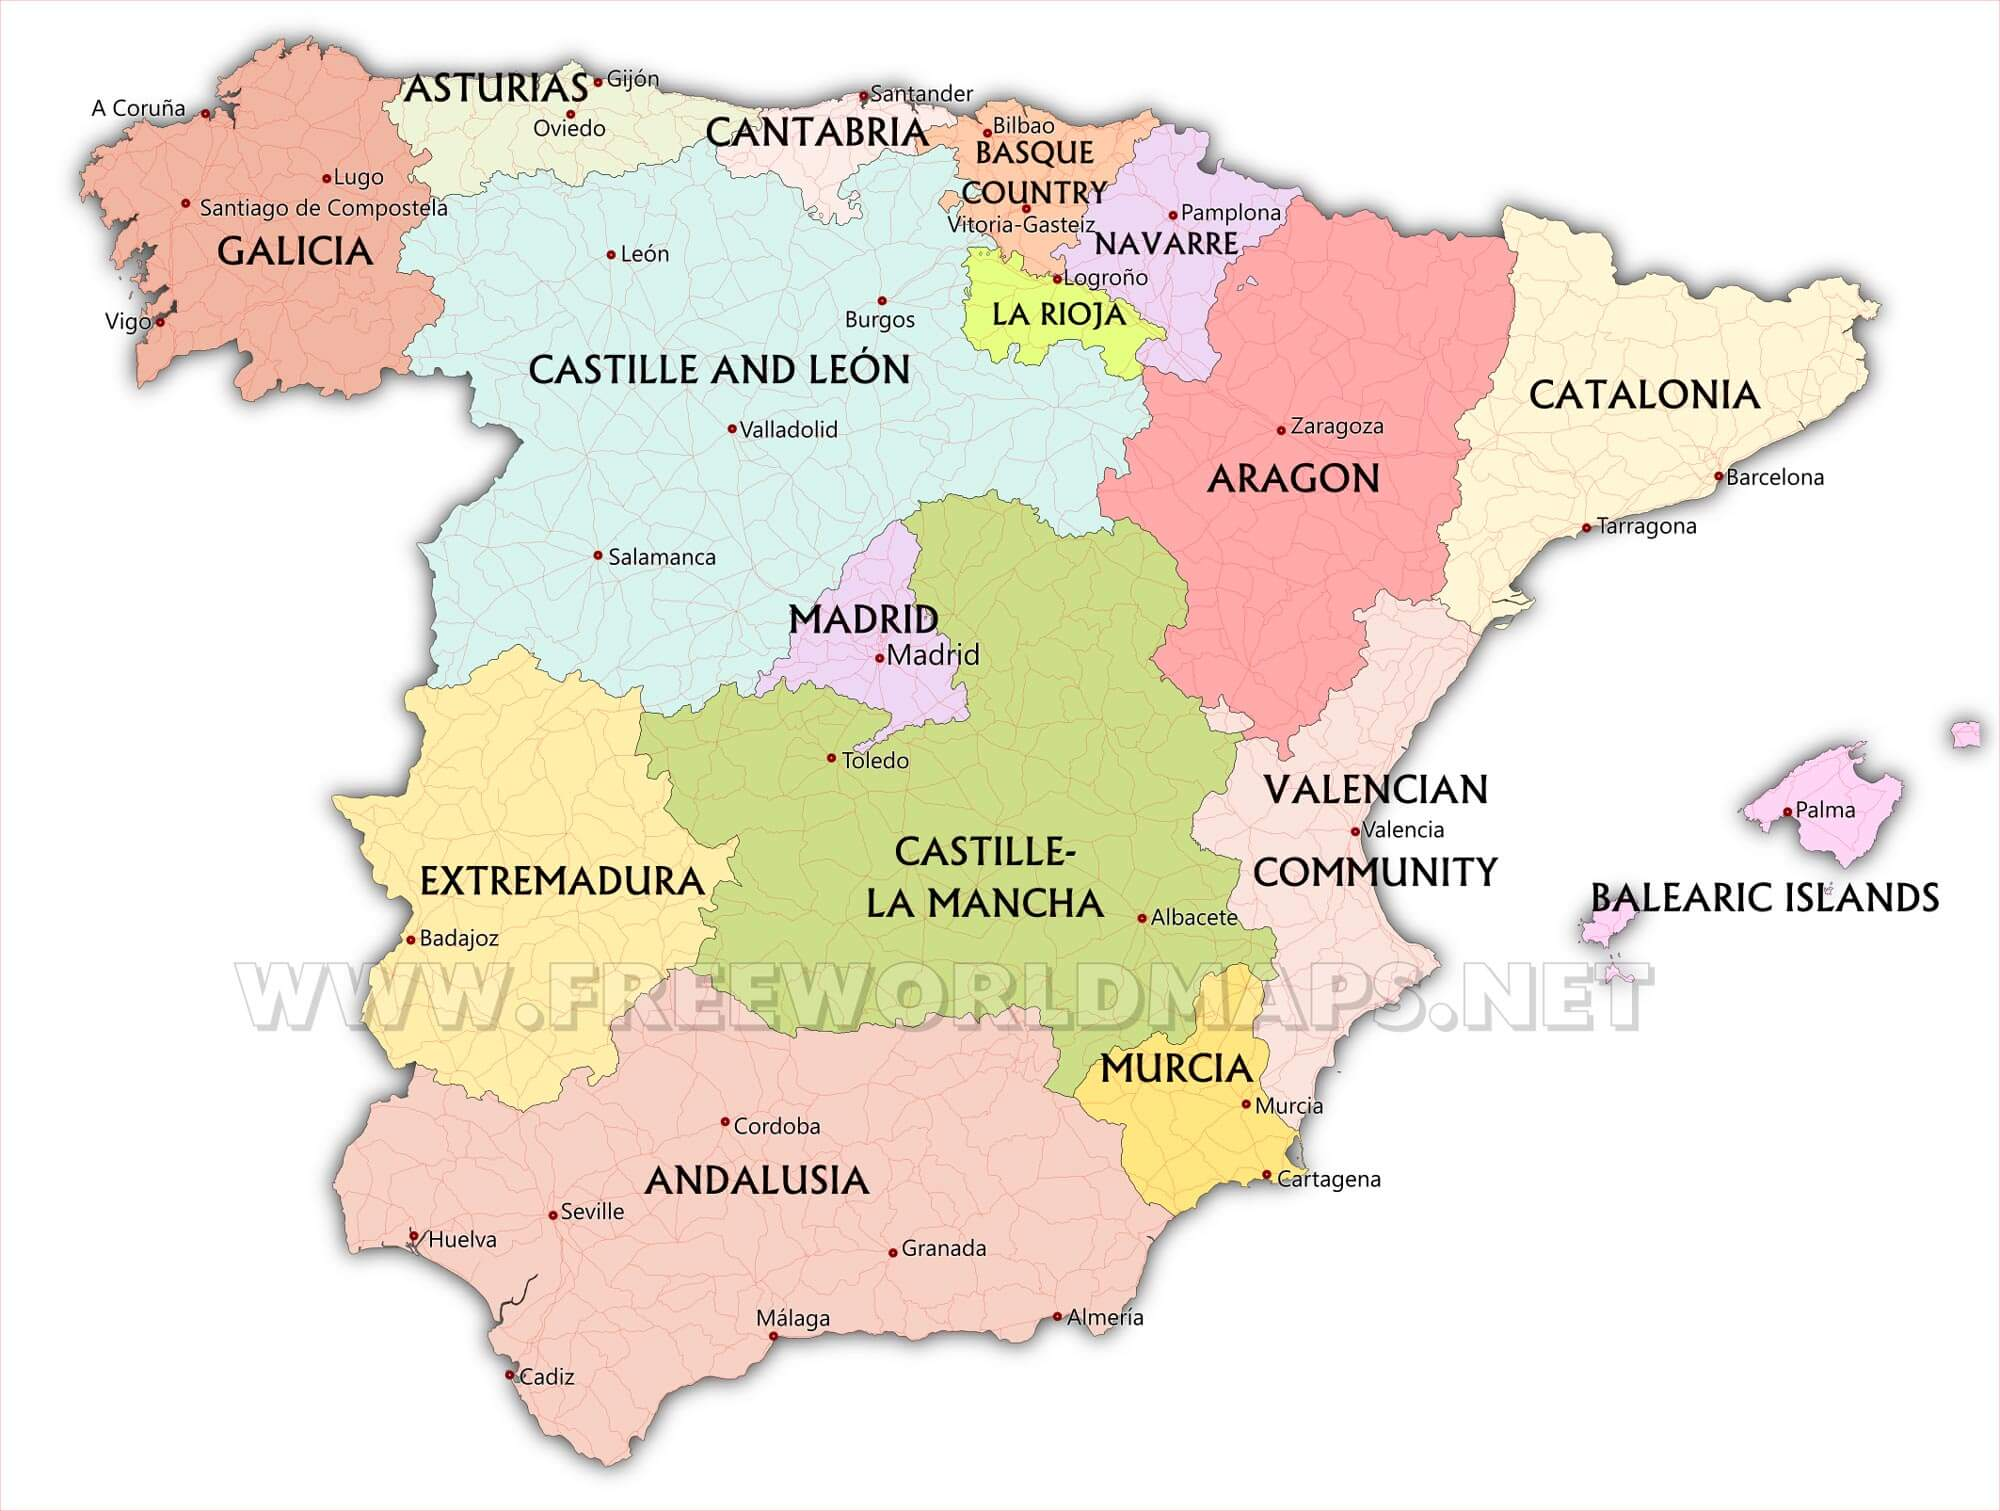 Spain Maps - by Freeworldmaps.net